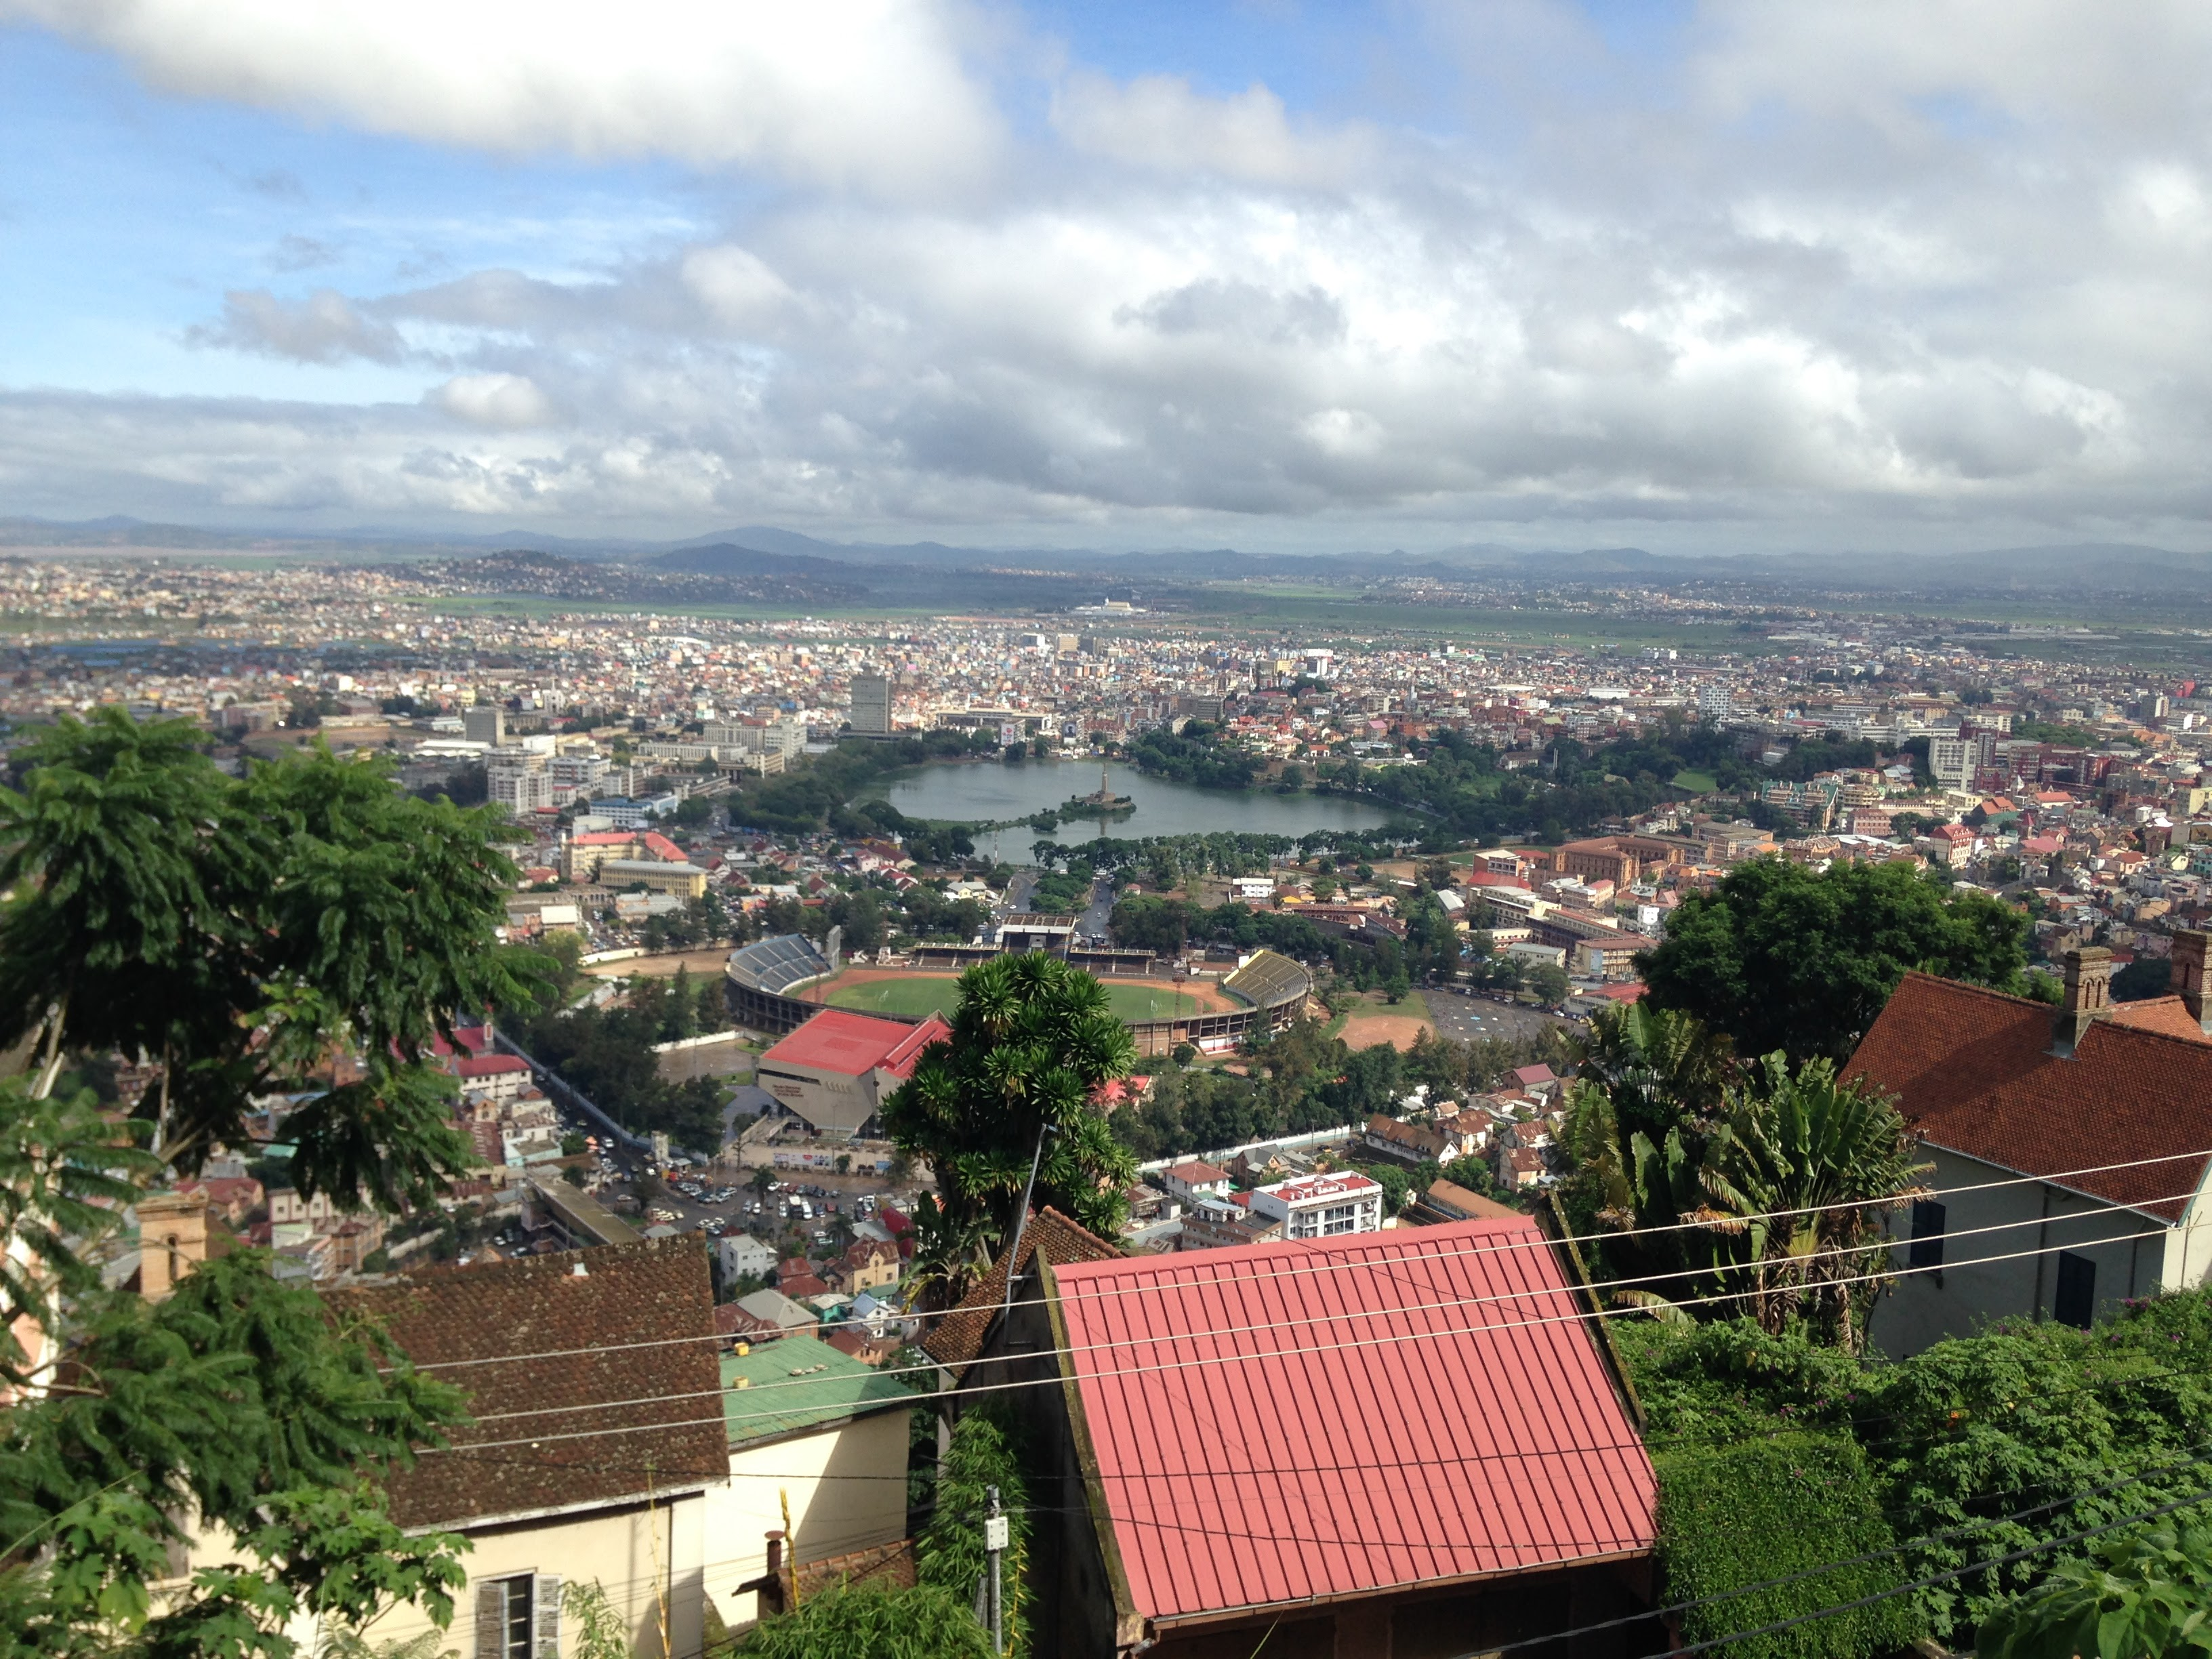 View of Antananarivo, Madagascar from Haute Ville (Upper Town)